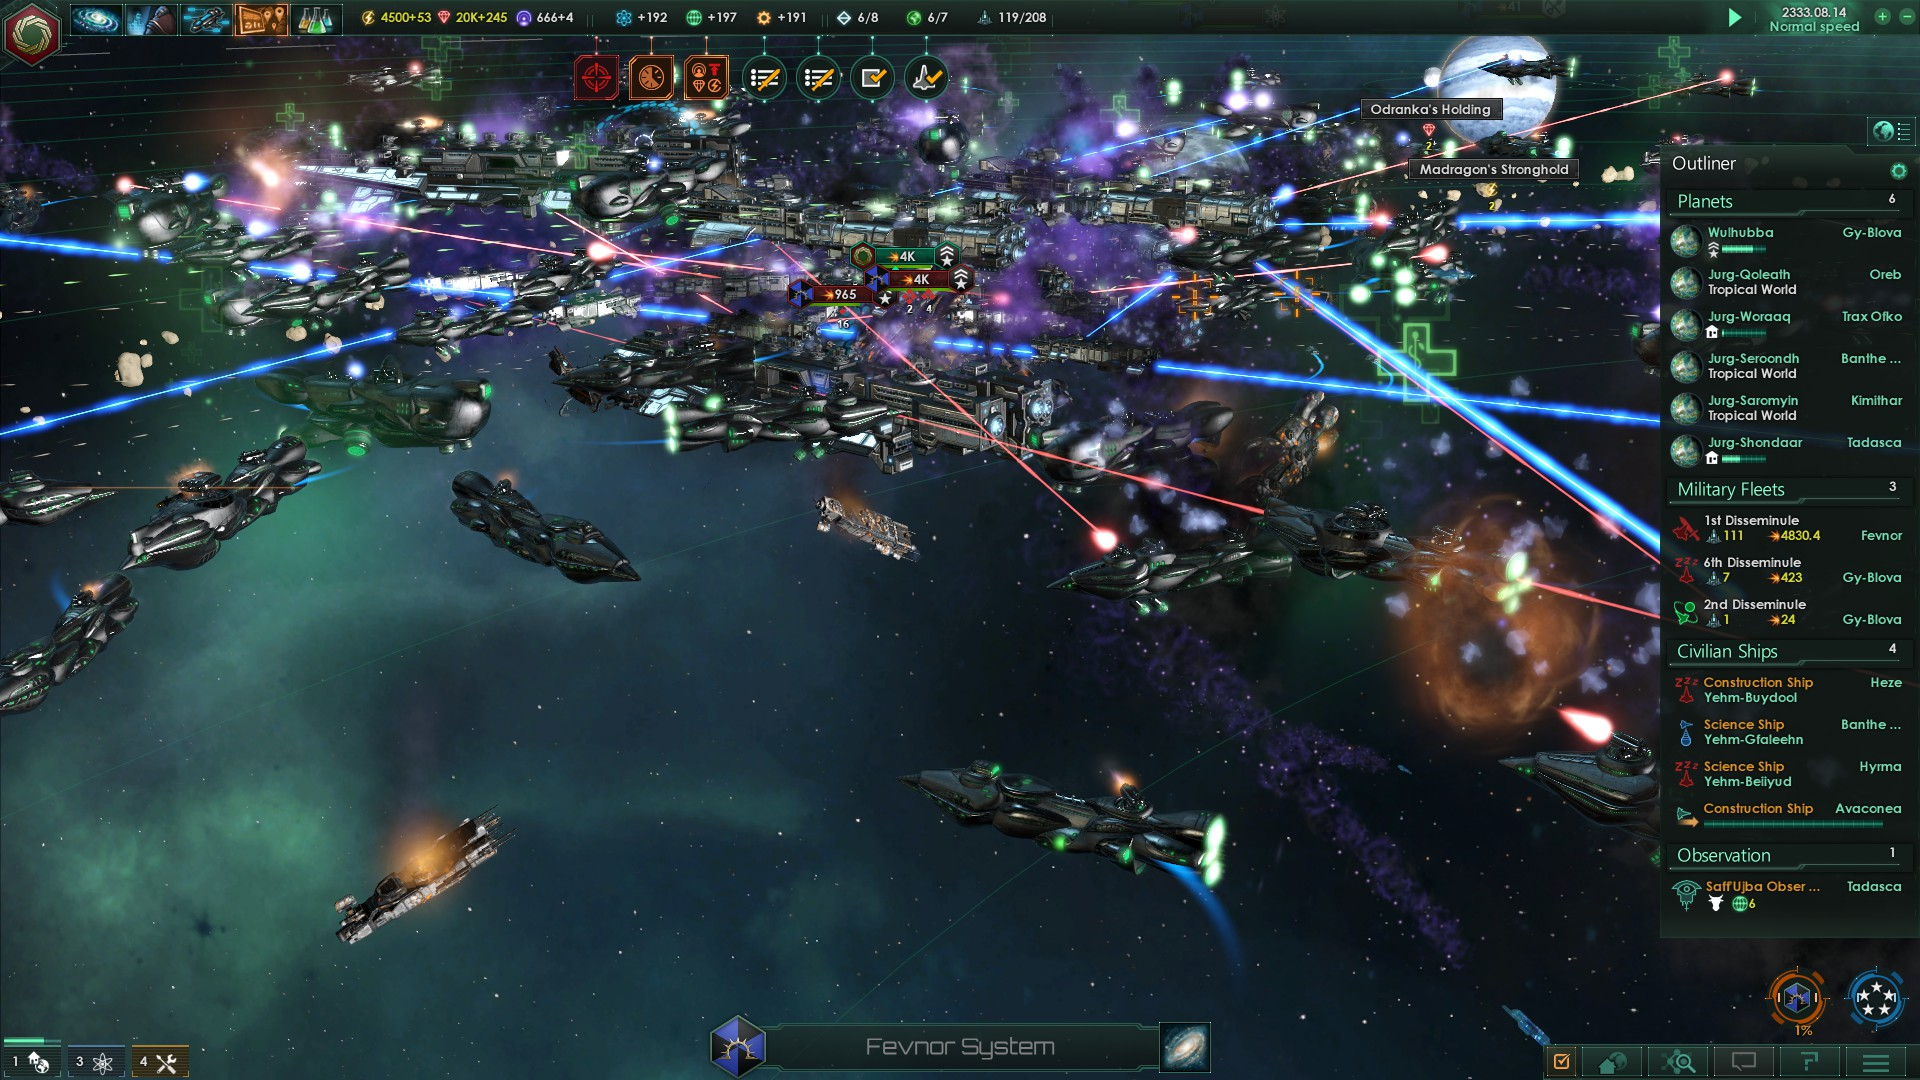 Large fleet battles are pleasingly chaotic – but further diplomatic options would be nice.